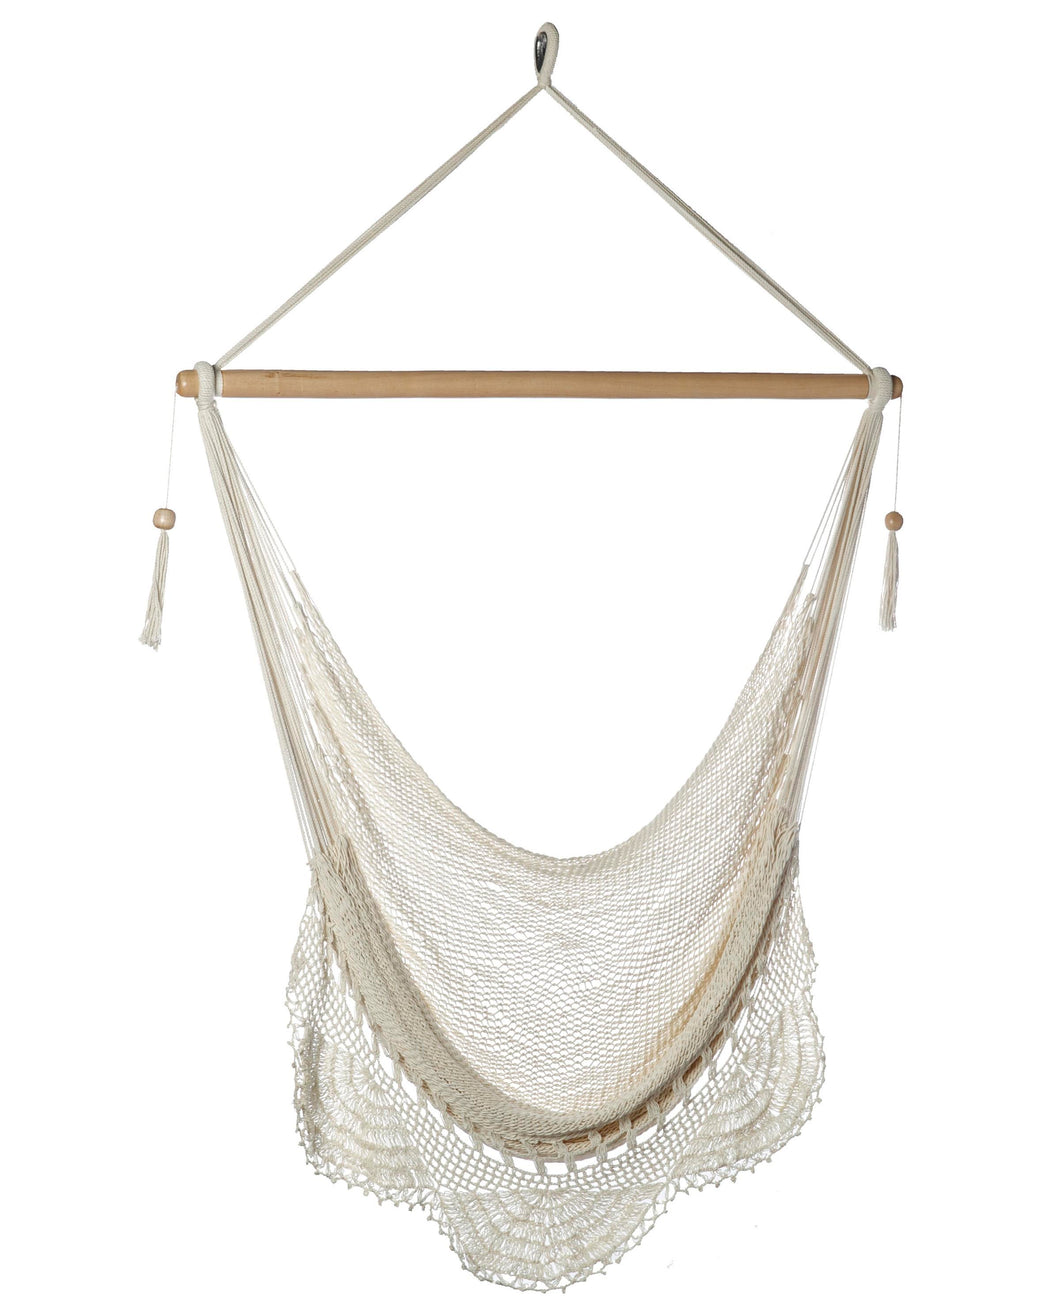 Large Hammock Chair with Crochet